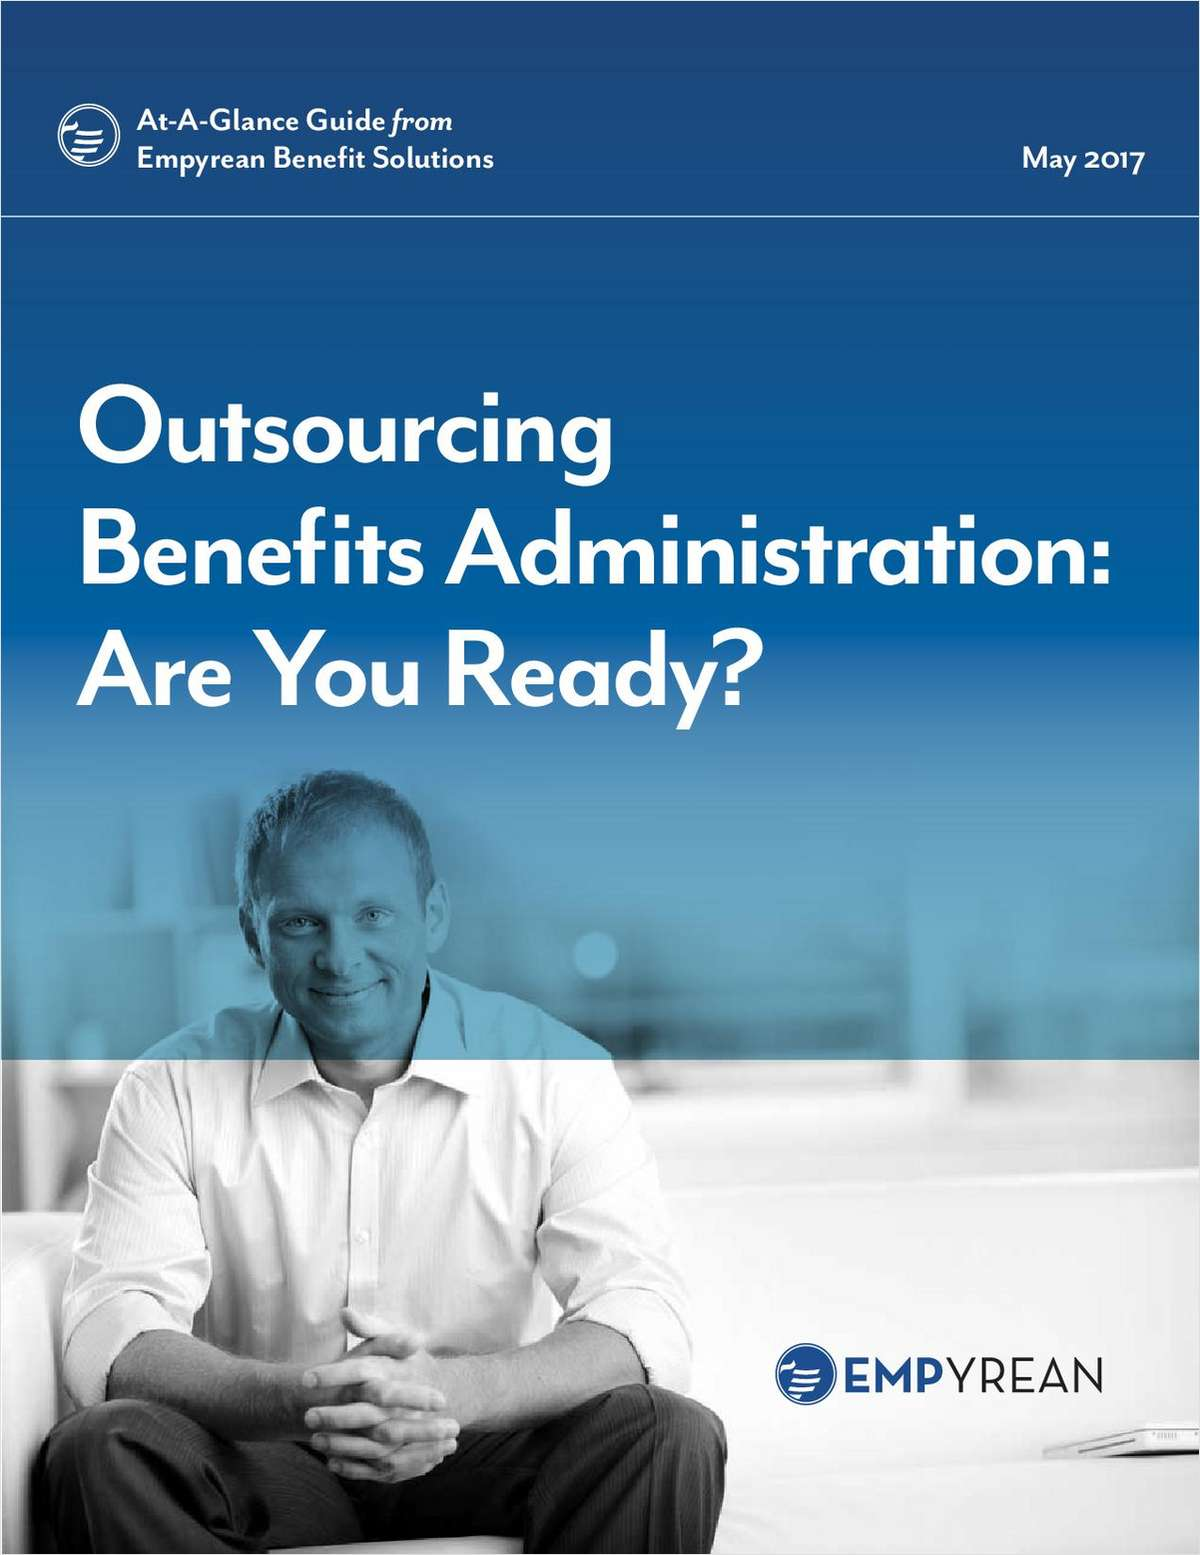 Outsourcing Benefits Administration: Are You Ready?